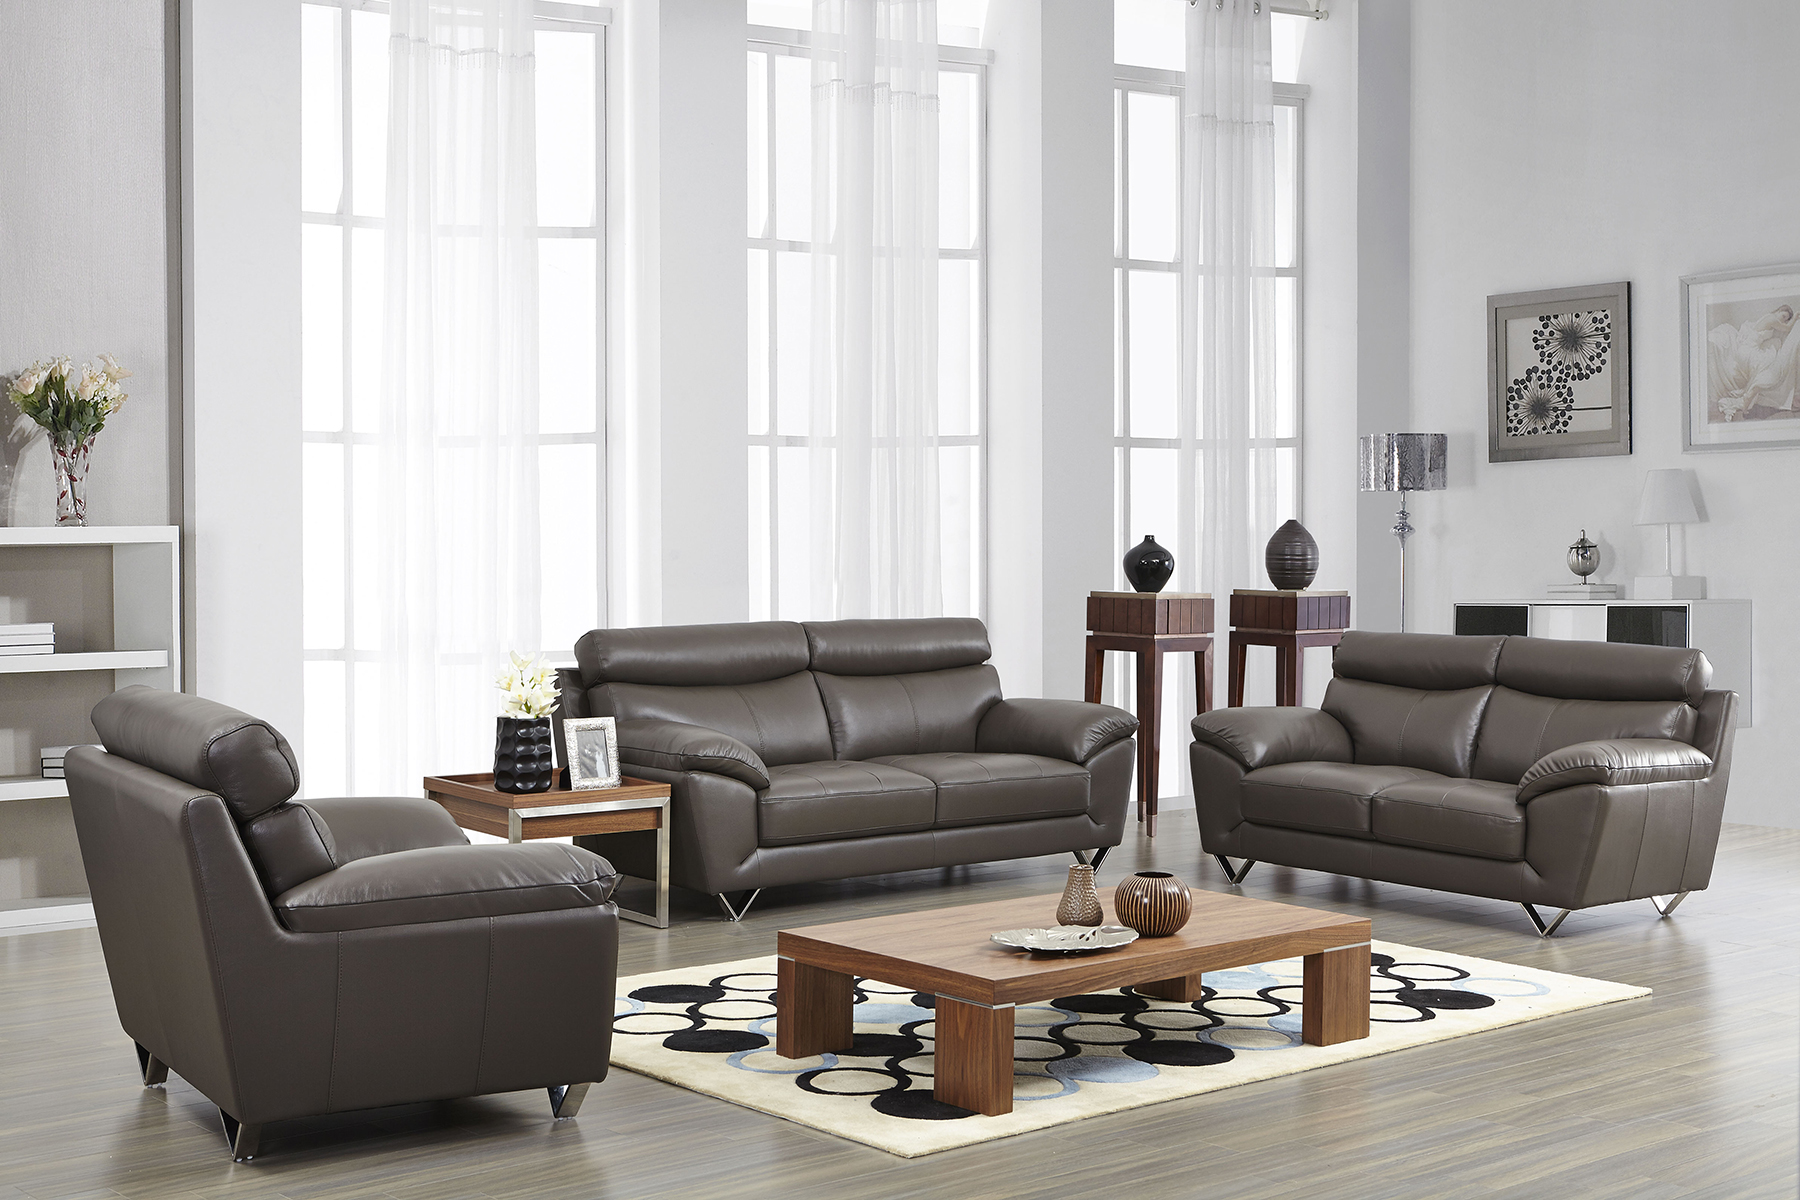 Genuine And Italian Leather, Modern Designer Sofas. Contemporary Stylish  Leather 3Pc Sofa Set ...